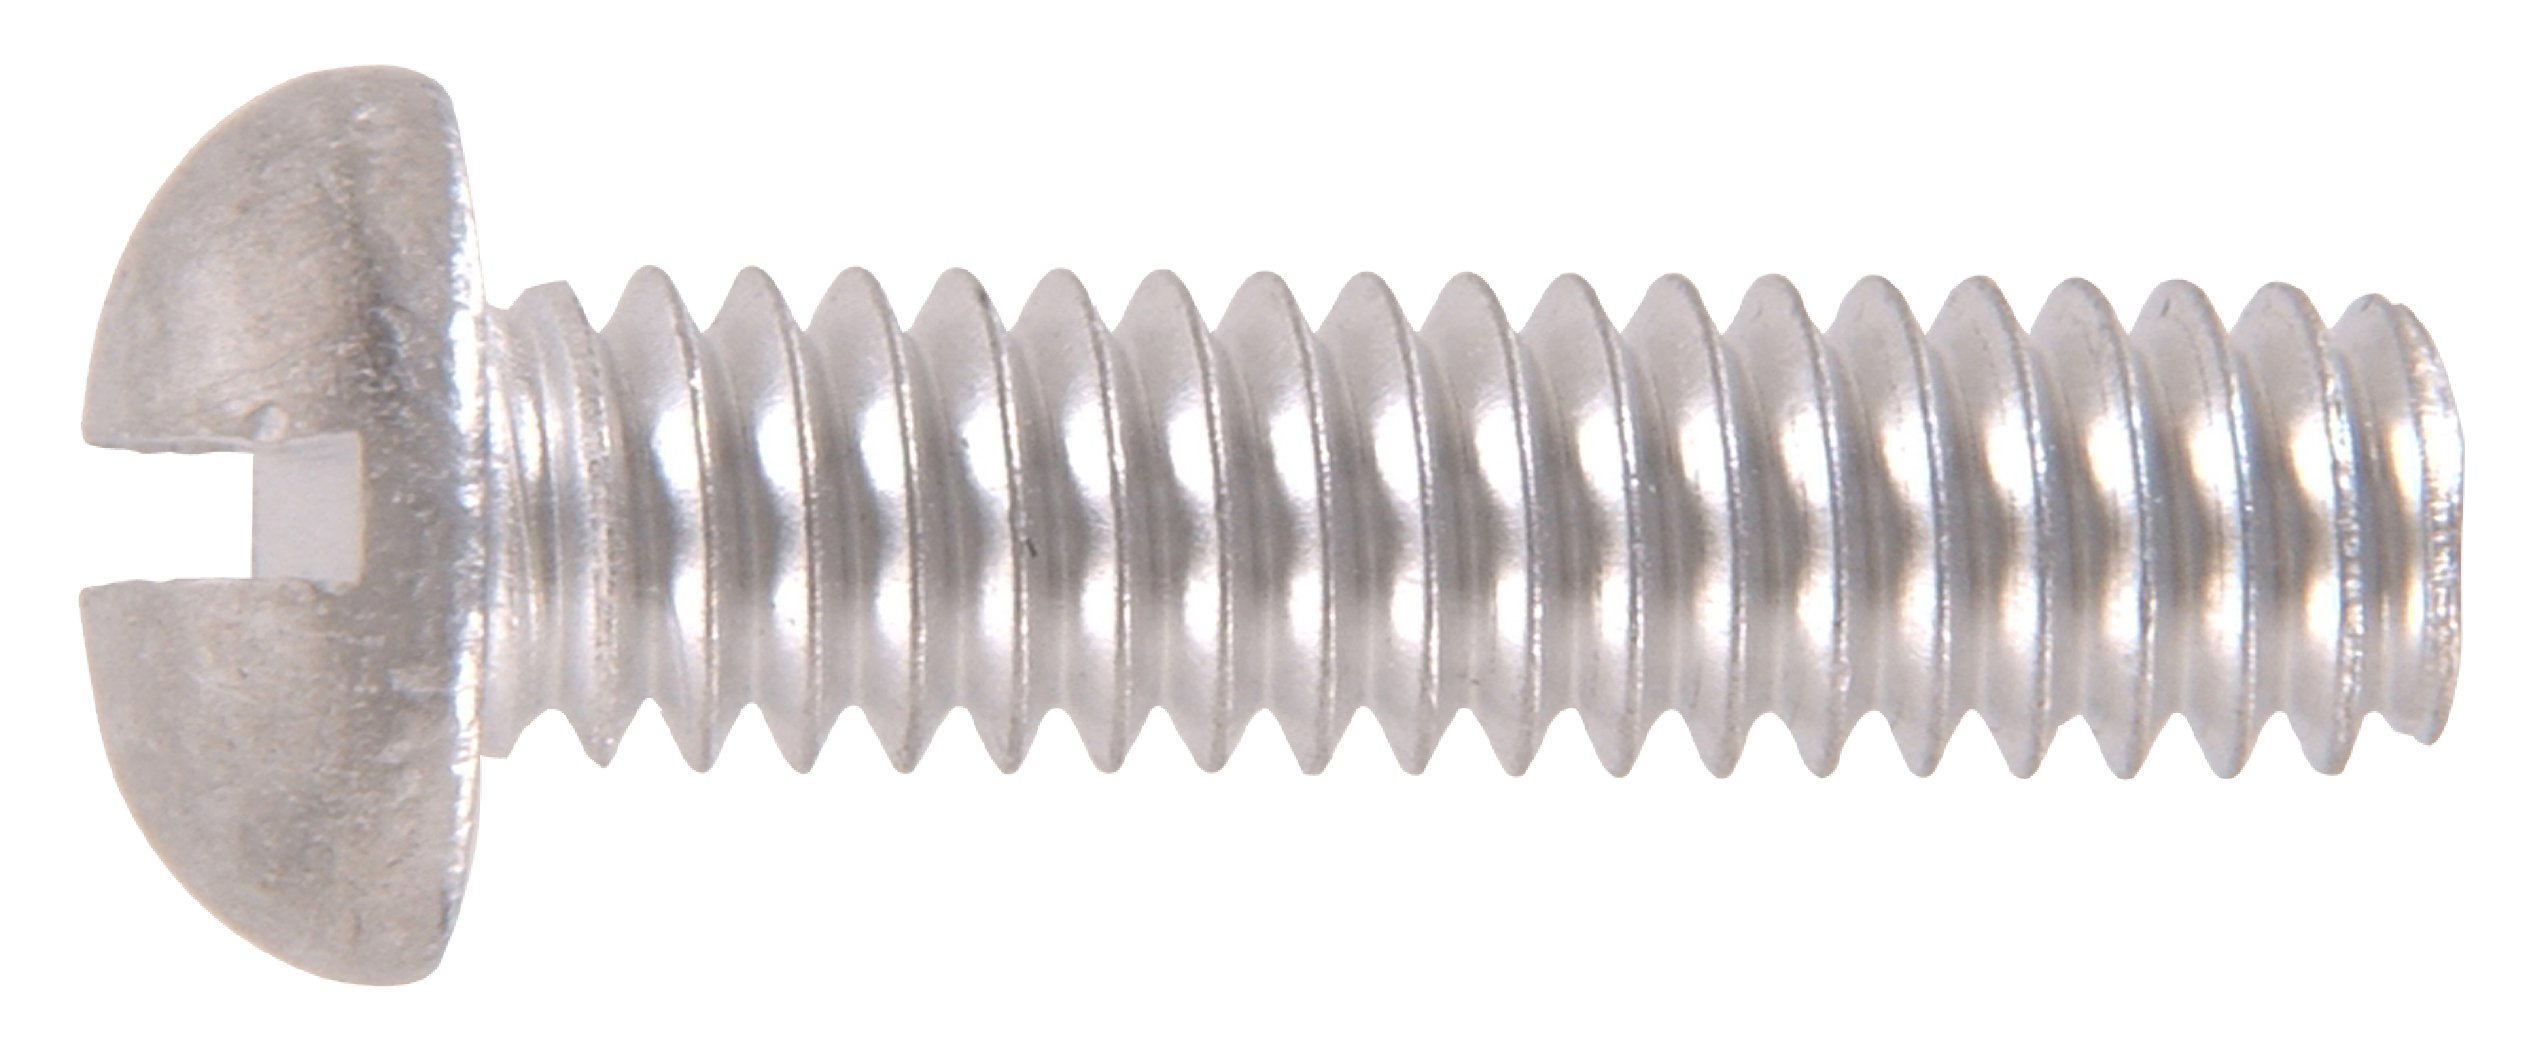 The Hillman Group The Hillman Group 1133 Aluminum Round Head Slotted Machine Screw 1/4-20 x 1 1/2 In. 16-Pack